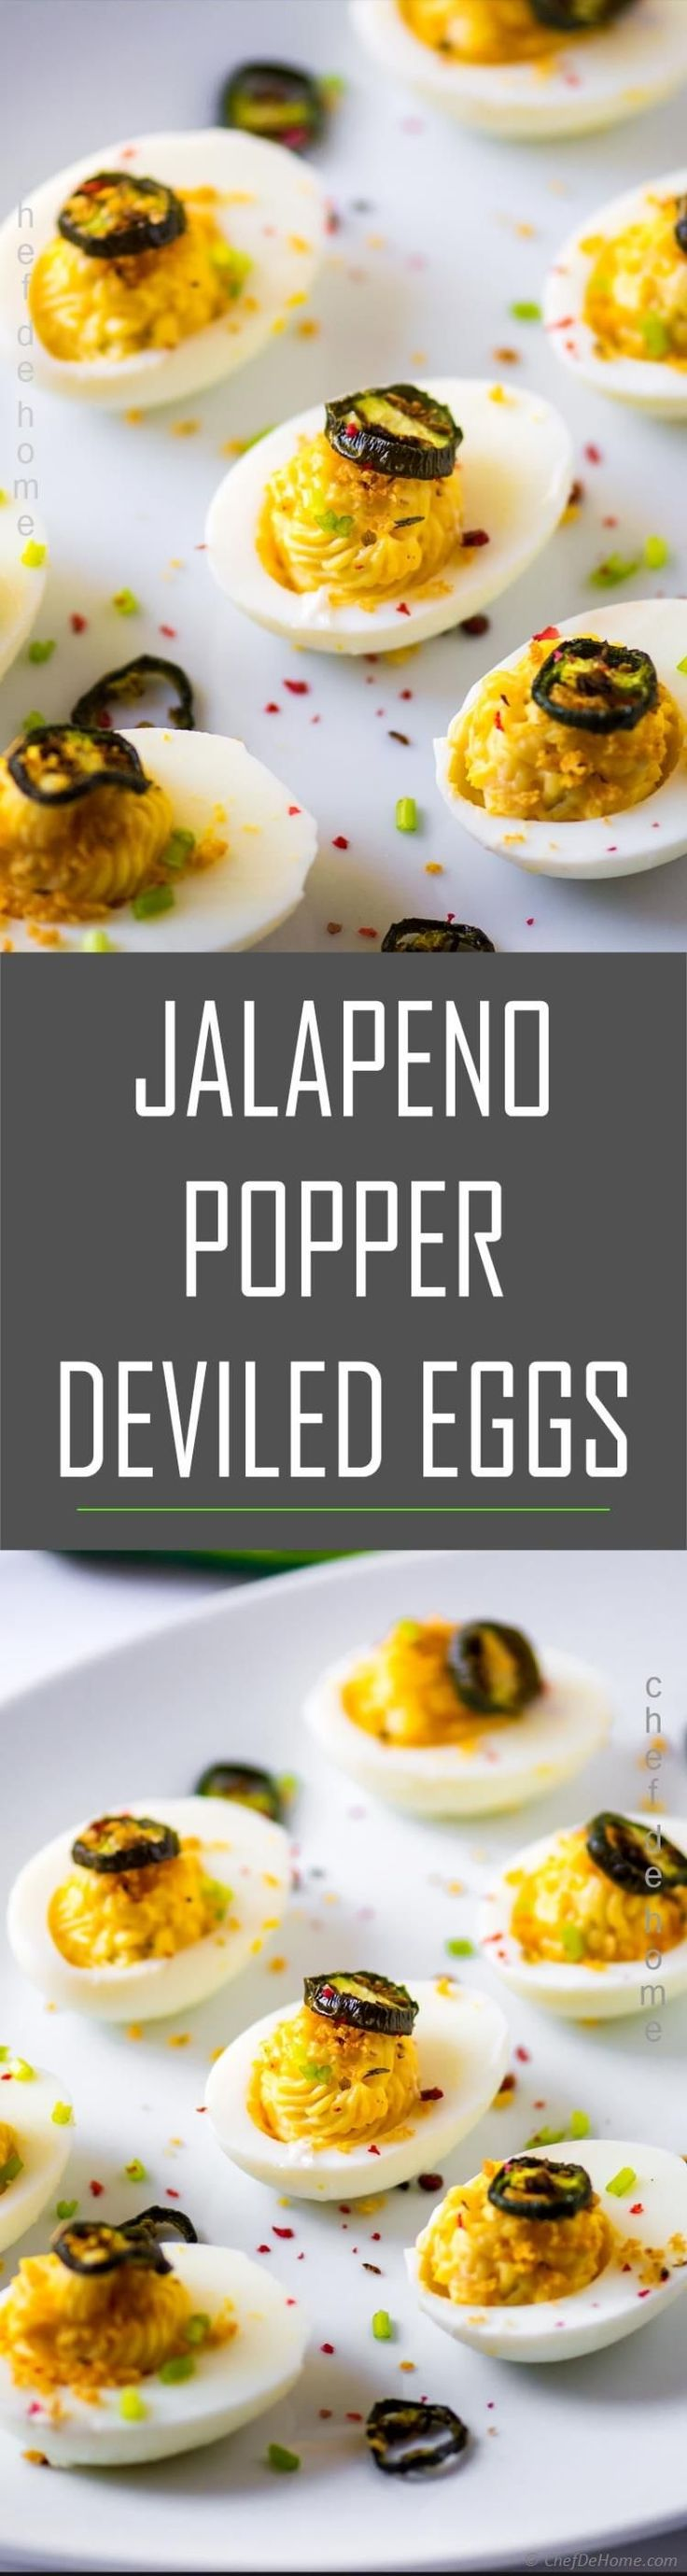 Quick and Easy Jalapeno Poppers Deviled Eggs with all-you-want-in-jalapeno-poppers topped on doubled eggs.. Jalapeno Popper Deviled Eggs is my take on…